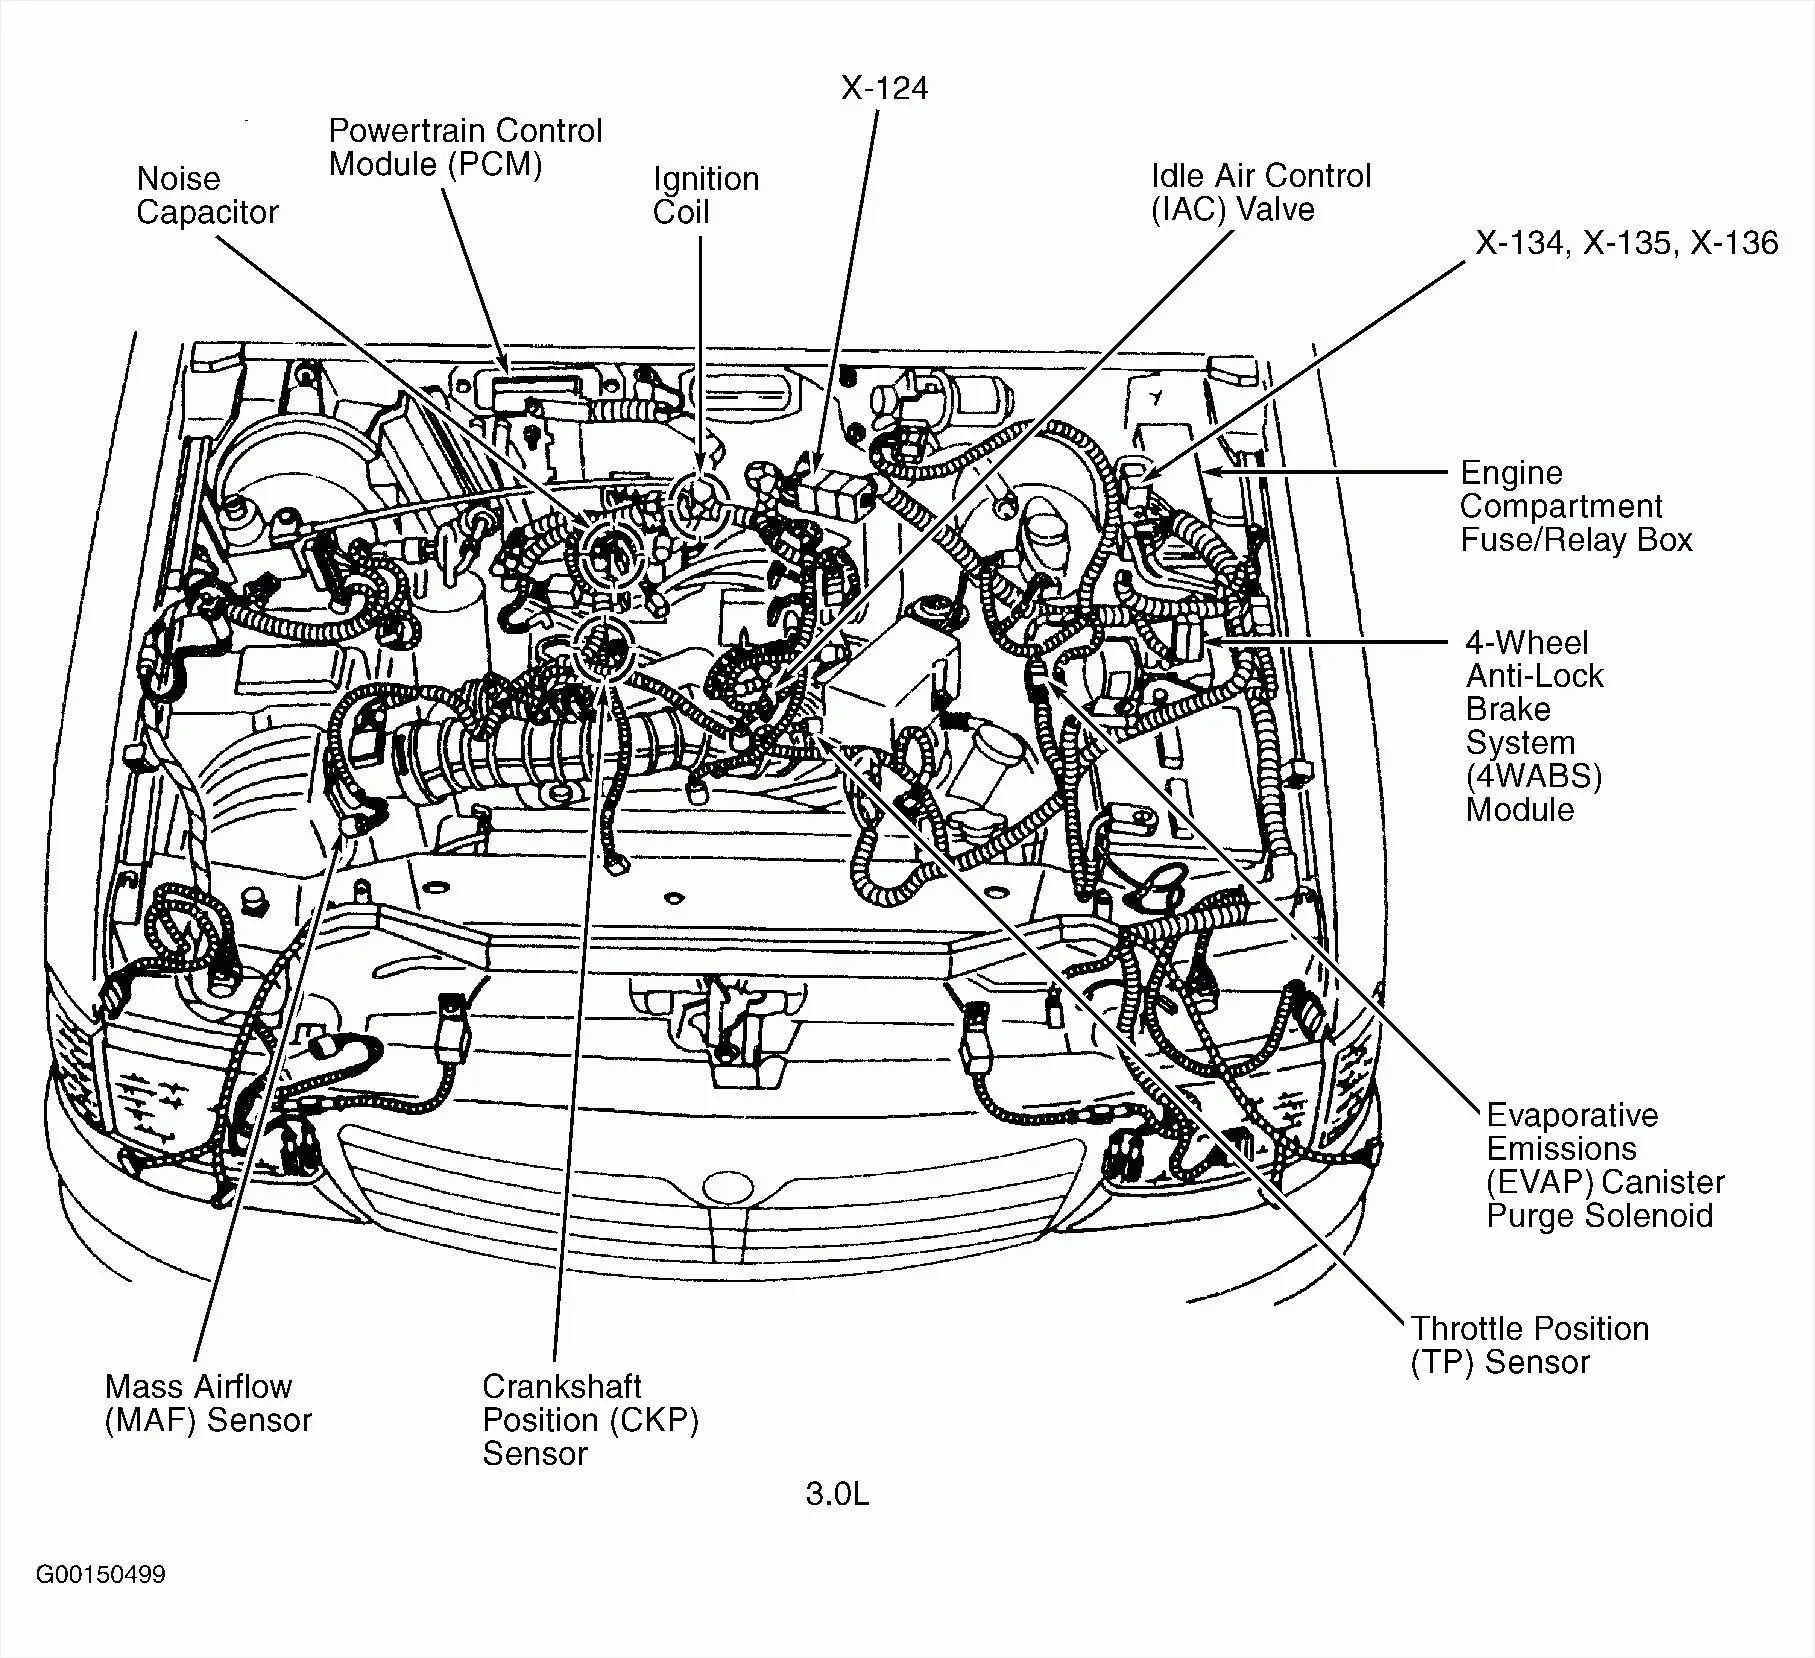 hight resolution of 1995 volkswagen jetta engine diagram wiring schematic wiring volkswagen jetta engine diagram 1995 volkswagen jetta engine